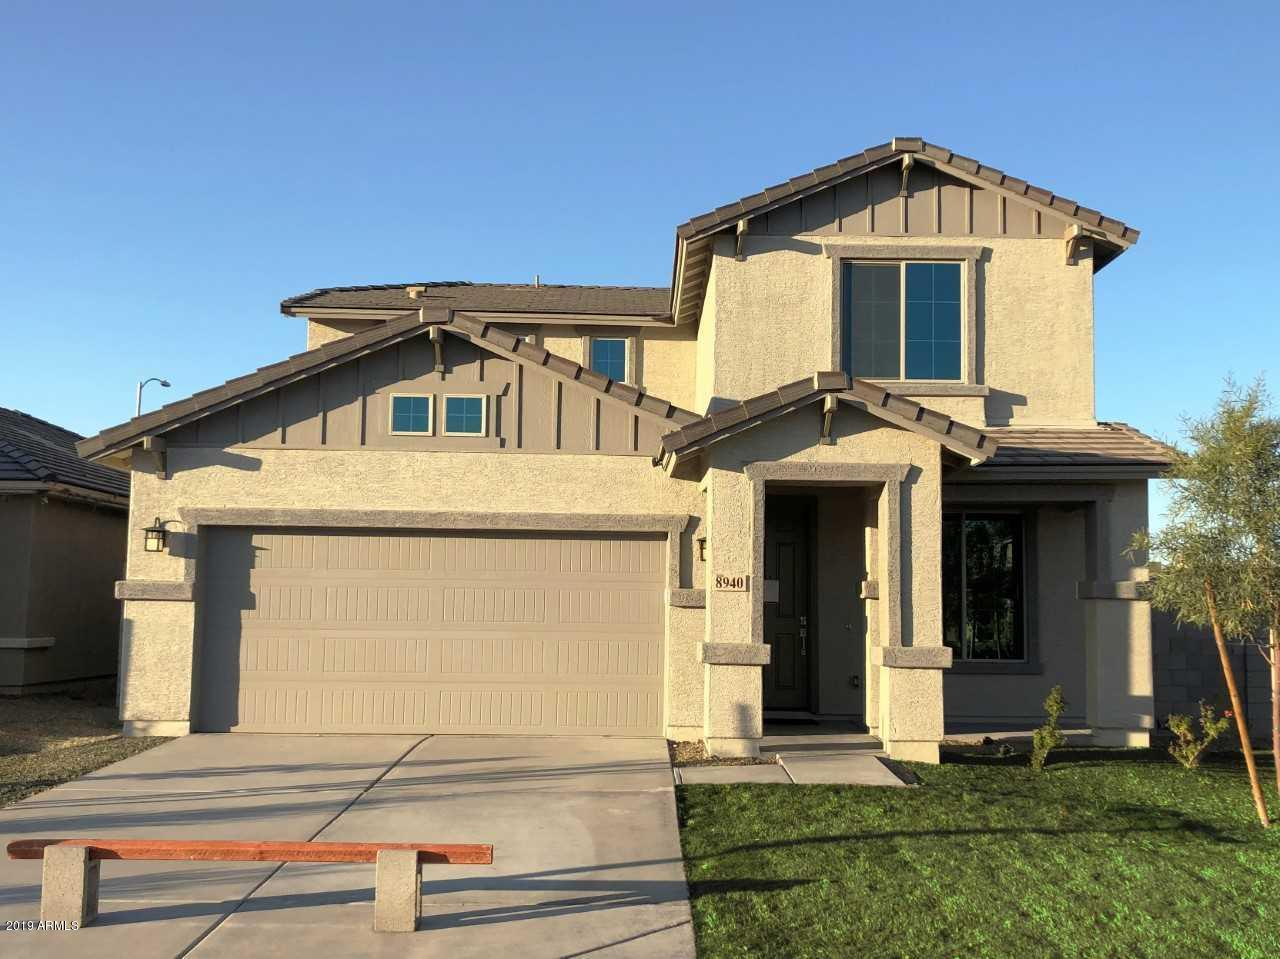 8940 W PUGET Avenue, Peoria in Maricopa County, AZ 85345 Home for Sale